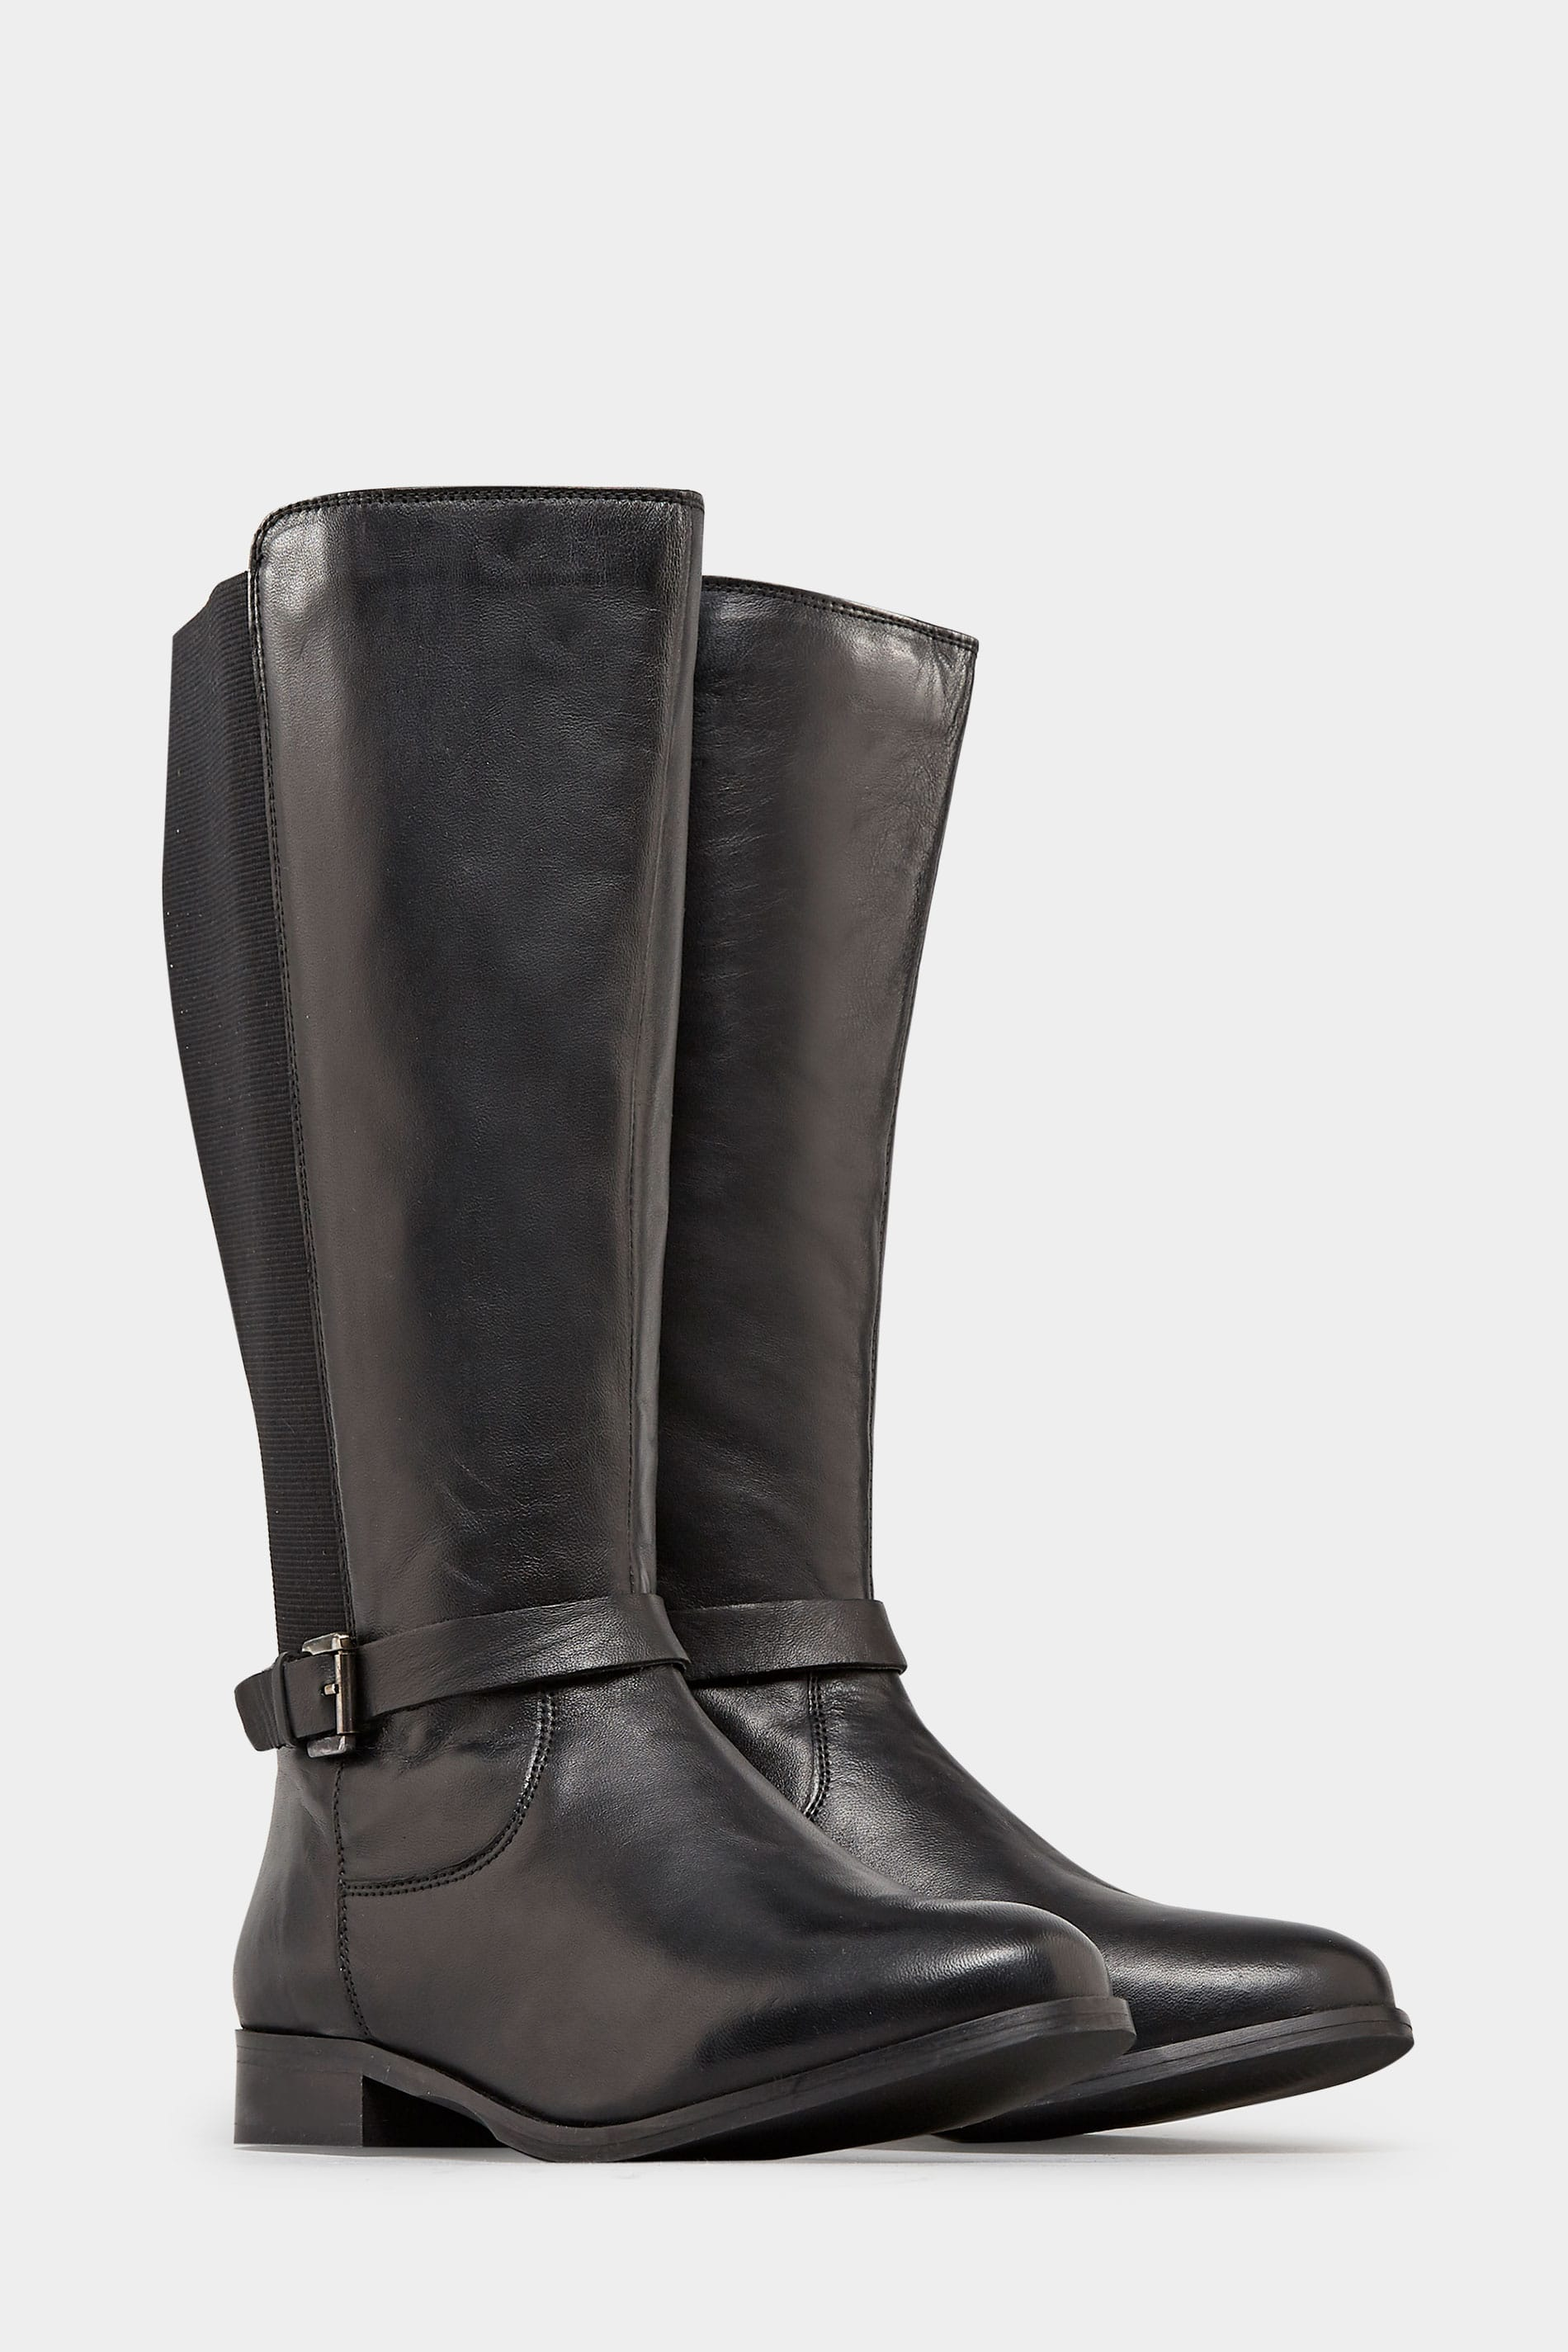 934ce5cdb6d58 Black Leather Riding Boots With Stretch Panels In EEE Fit